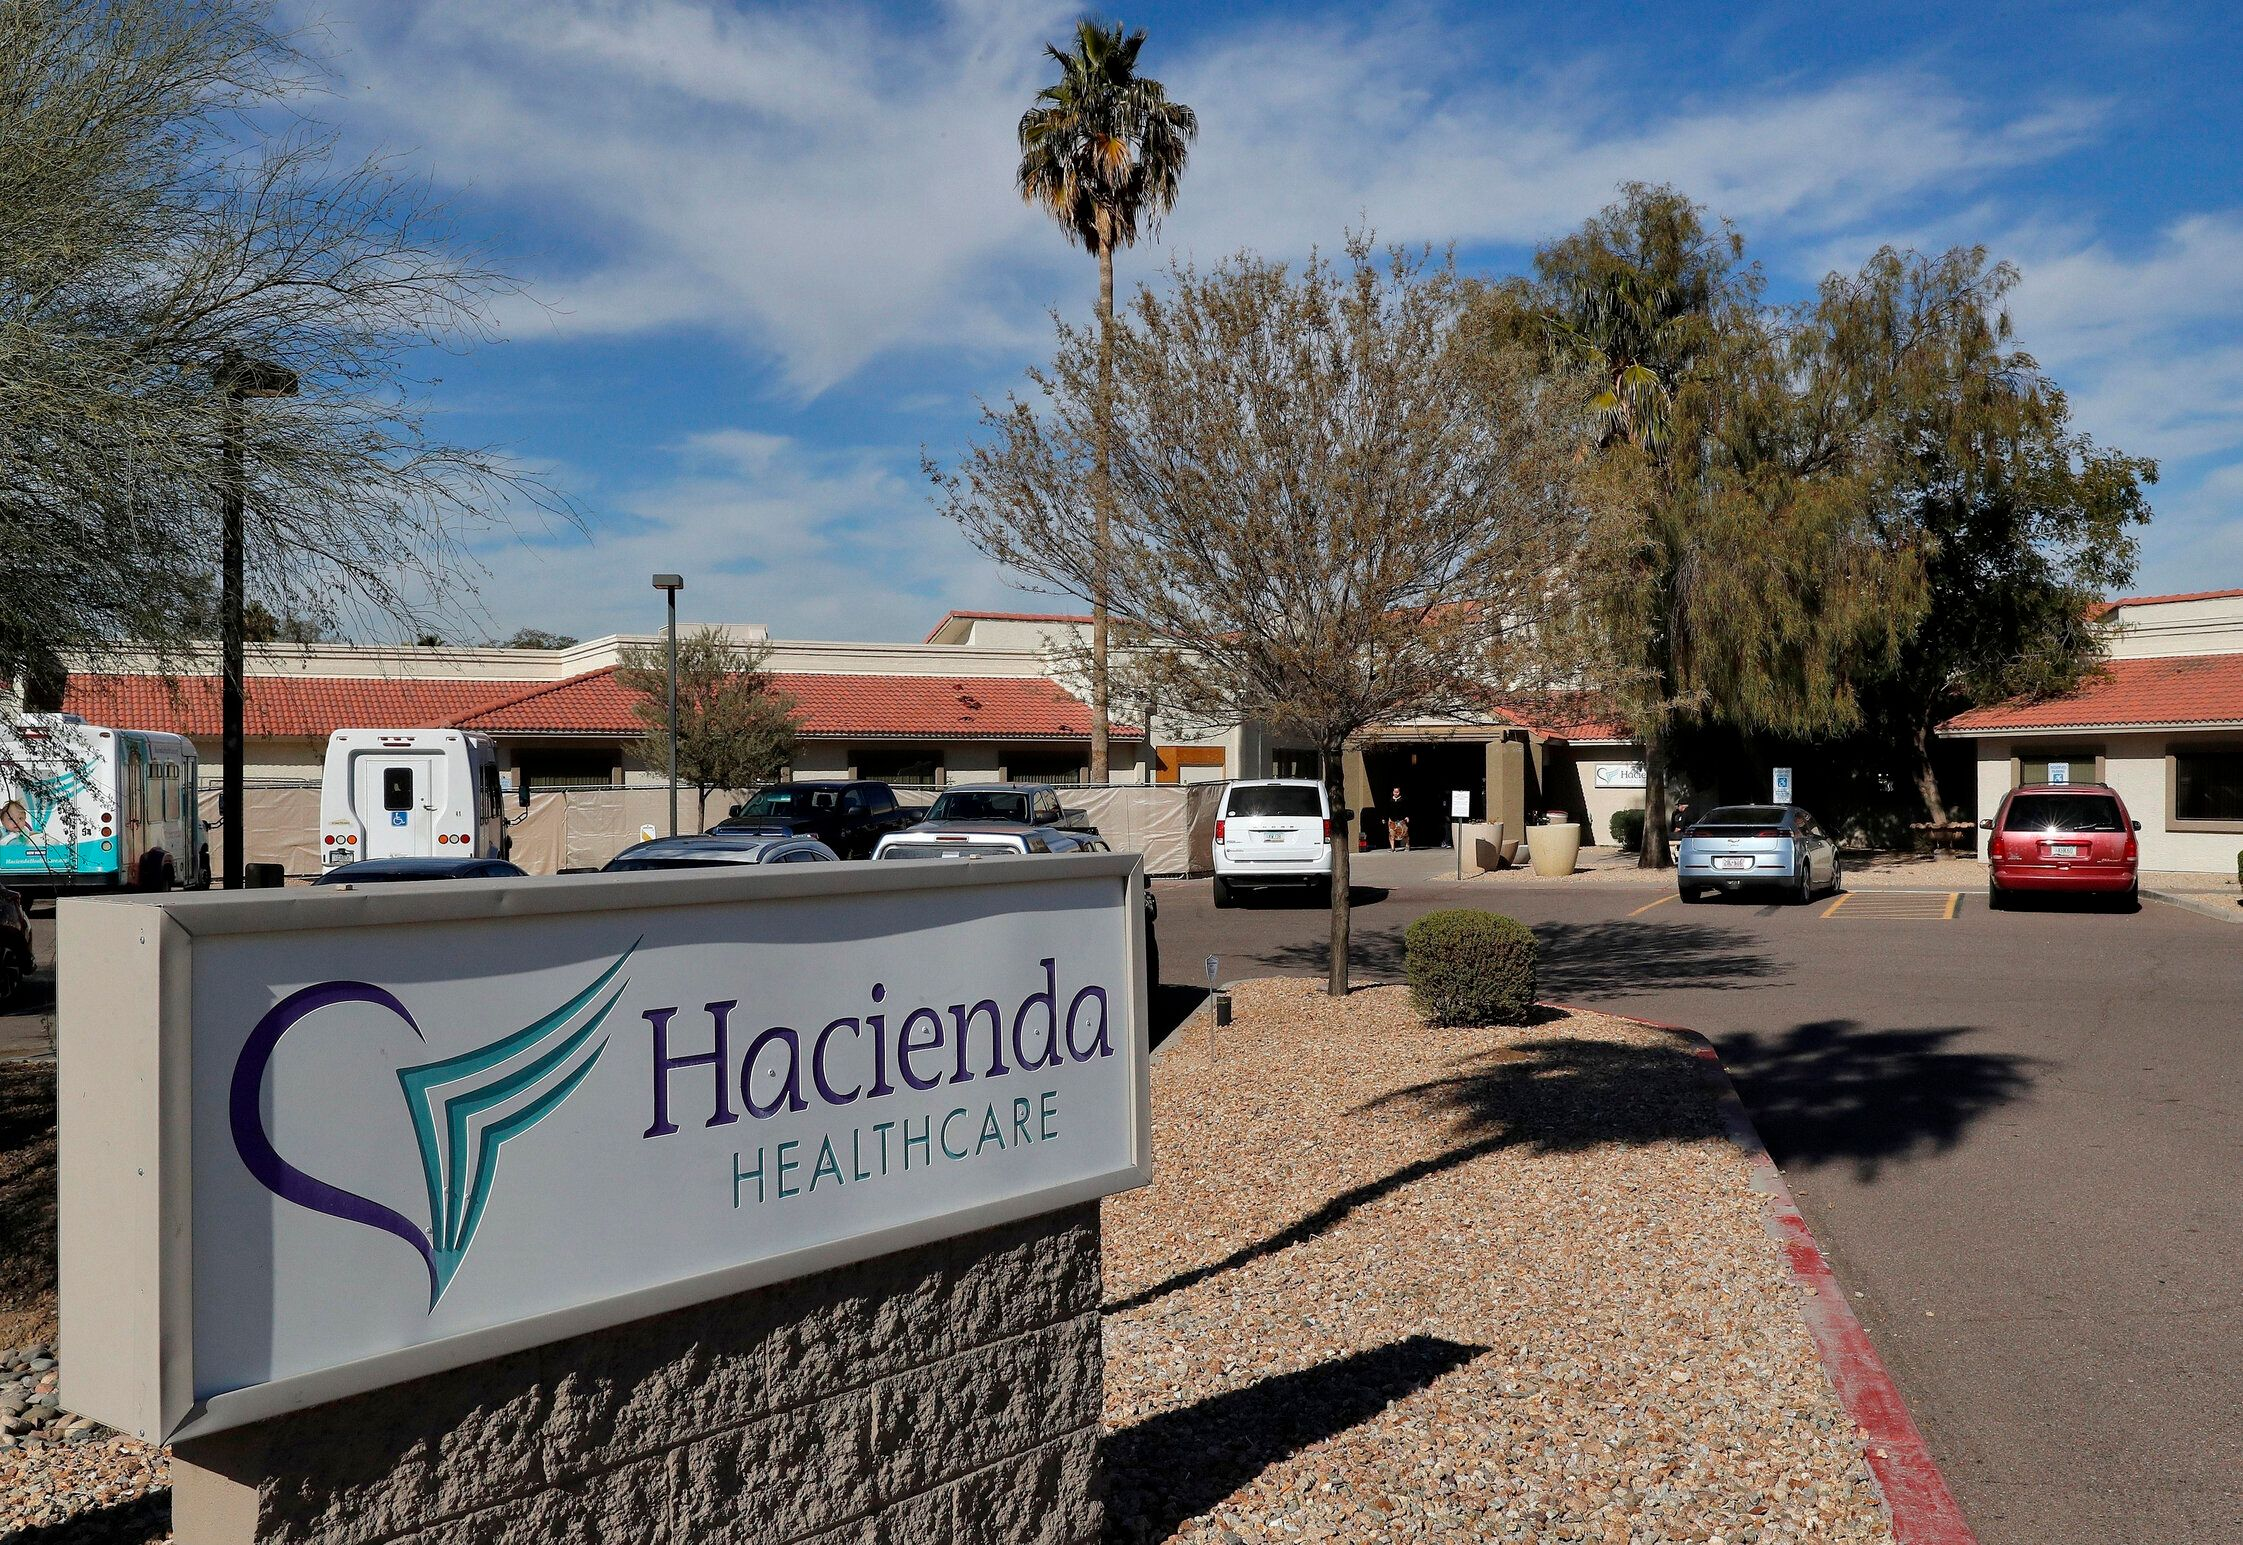 FILE - This Jan. 25, 2019, file photo shows the Hacienda HealthCare facility in Phoenix. A Phoenix long-term care facility where an incapacitated woman was raped and then gave birth now has a state license to operate. Hacienda HealthCare on Tuesday, April 30, 2019, said the Arizona Department of Health Services approved the license last week and it is valid for 11 months. (AP Photo/Matt York, File)